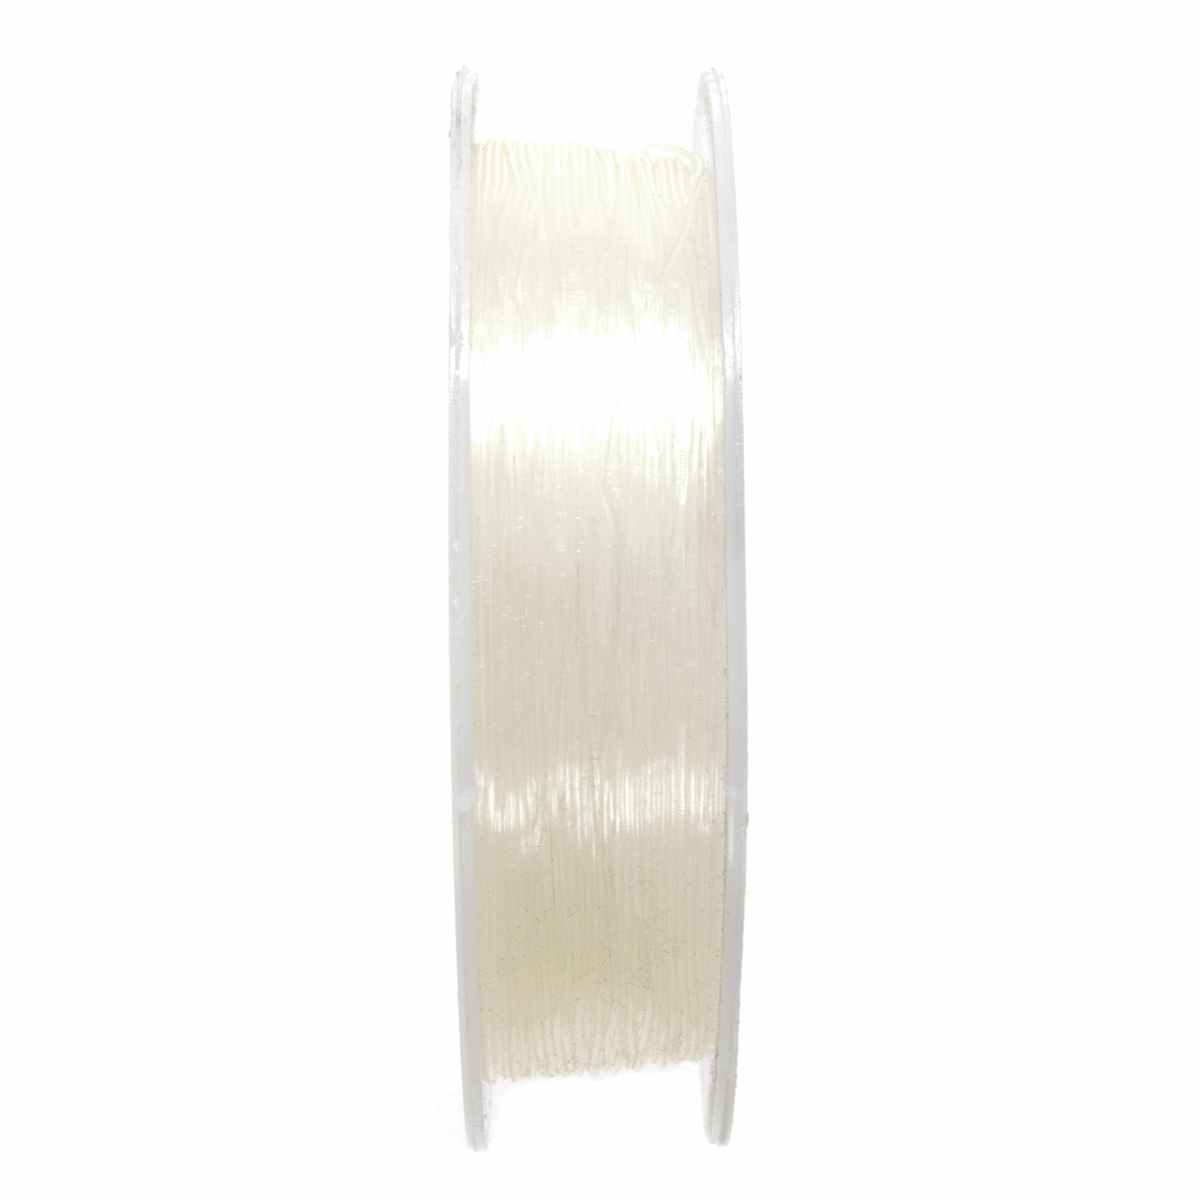 Picture of Stretch Cord: 25m x 0.5mm: Clear: 1 Pack of 25m